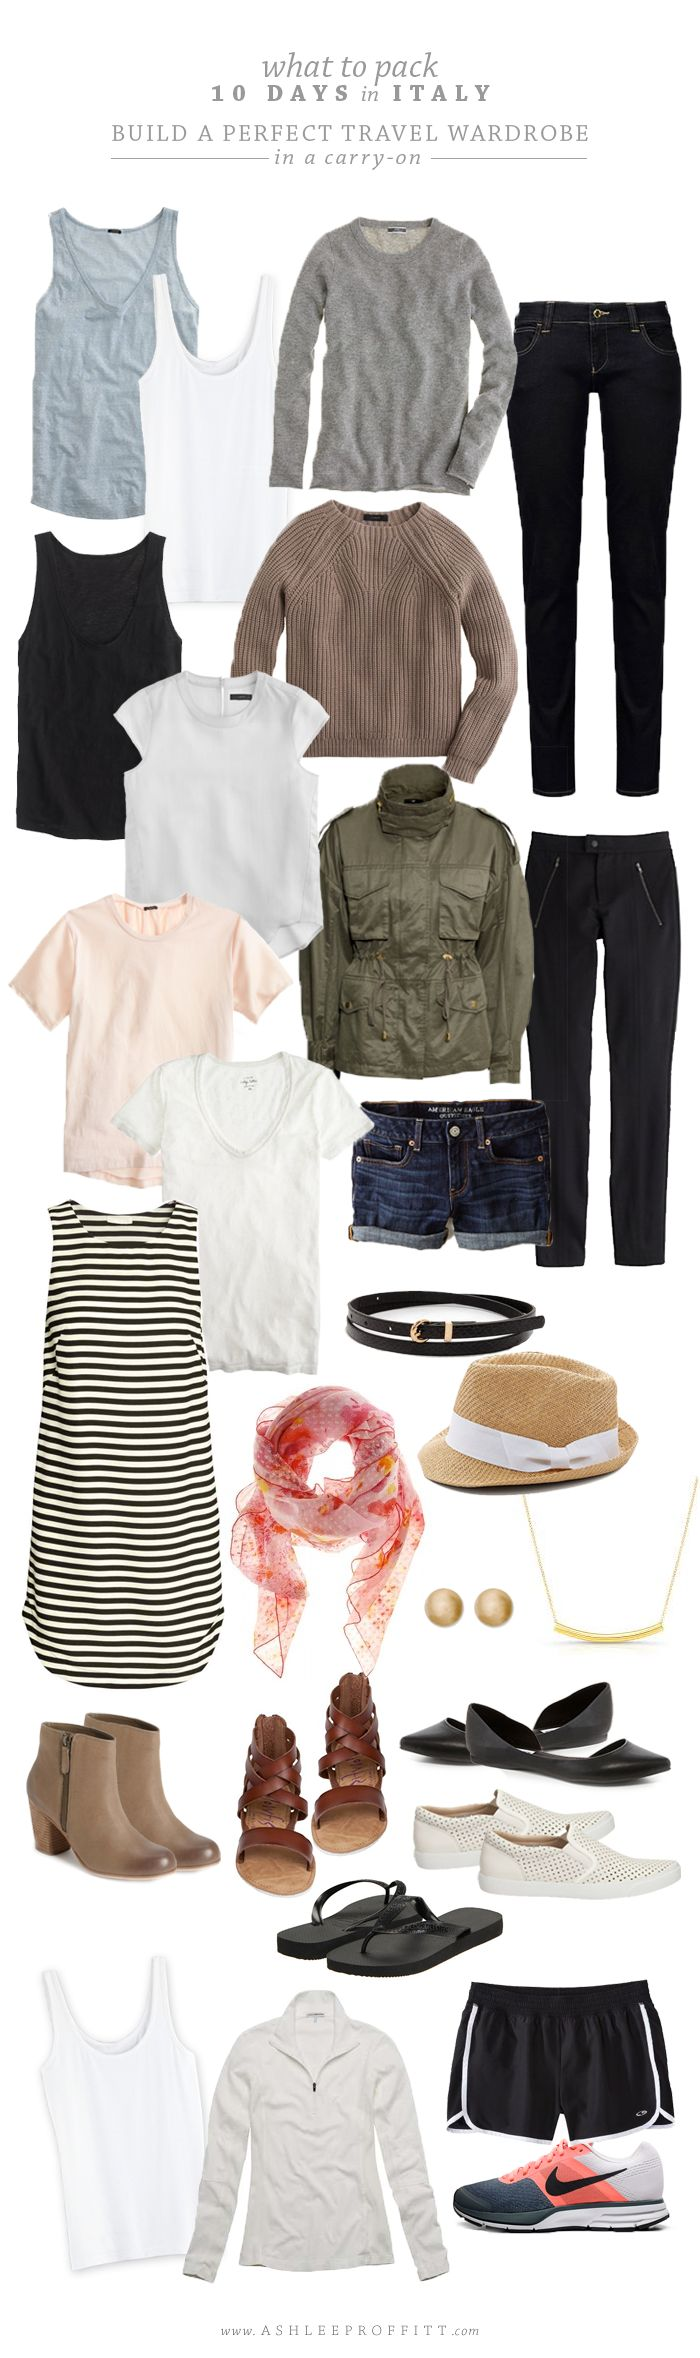 What To Pack: 10 Days in Italy   Build a perfect travel wardrobe!   Intentional Style by Ashlee Proffitt and Megan Michele